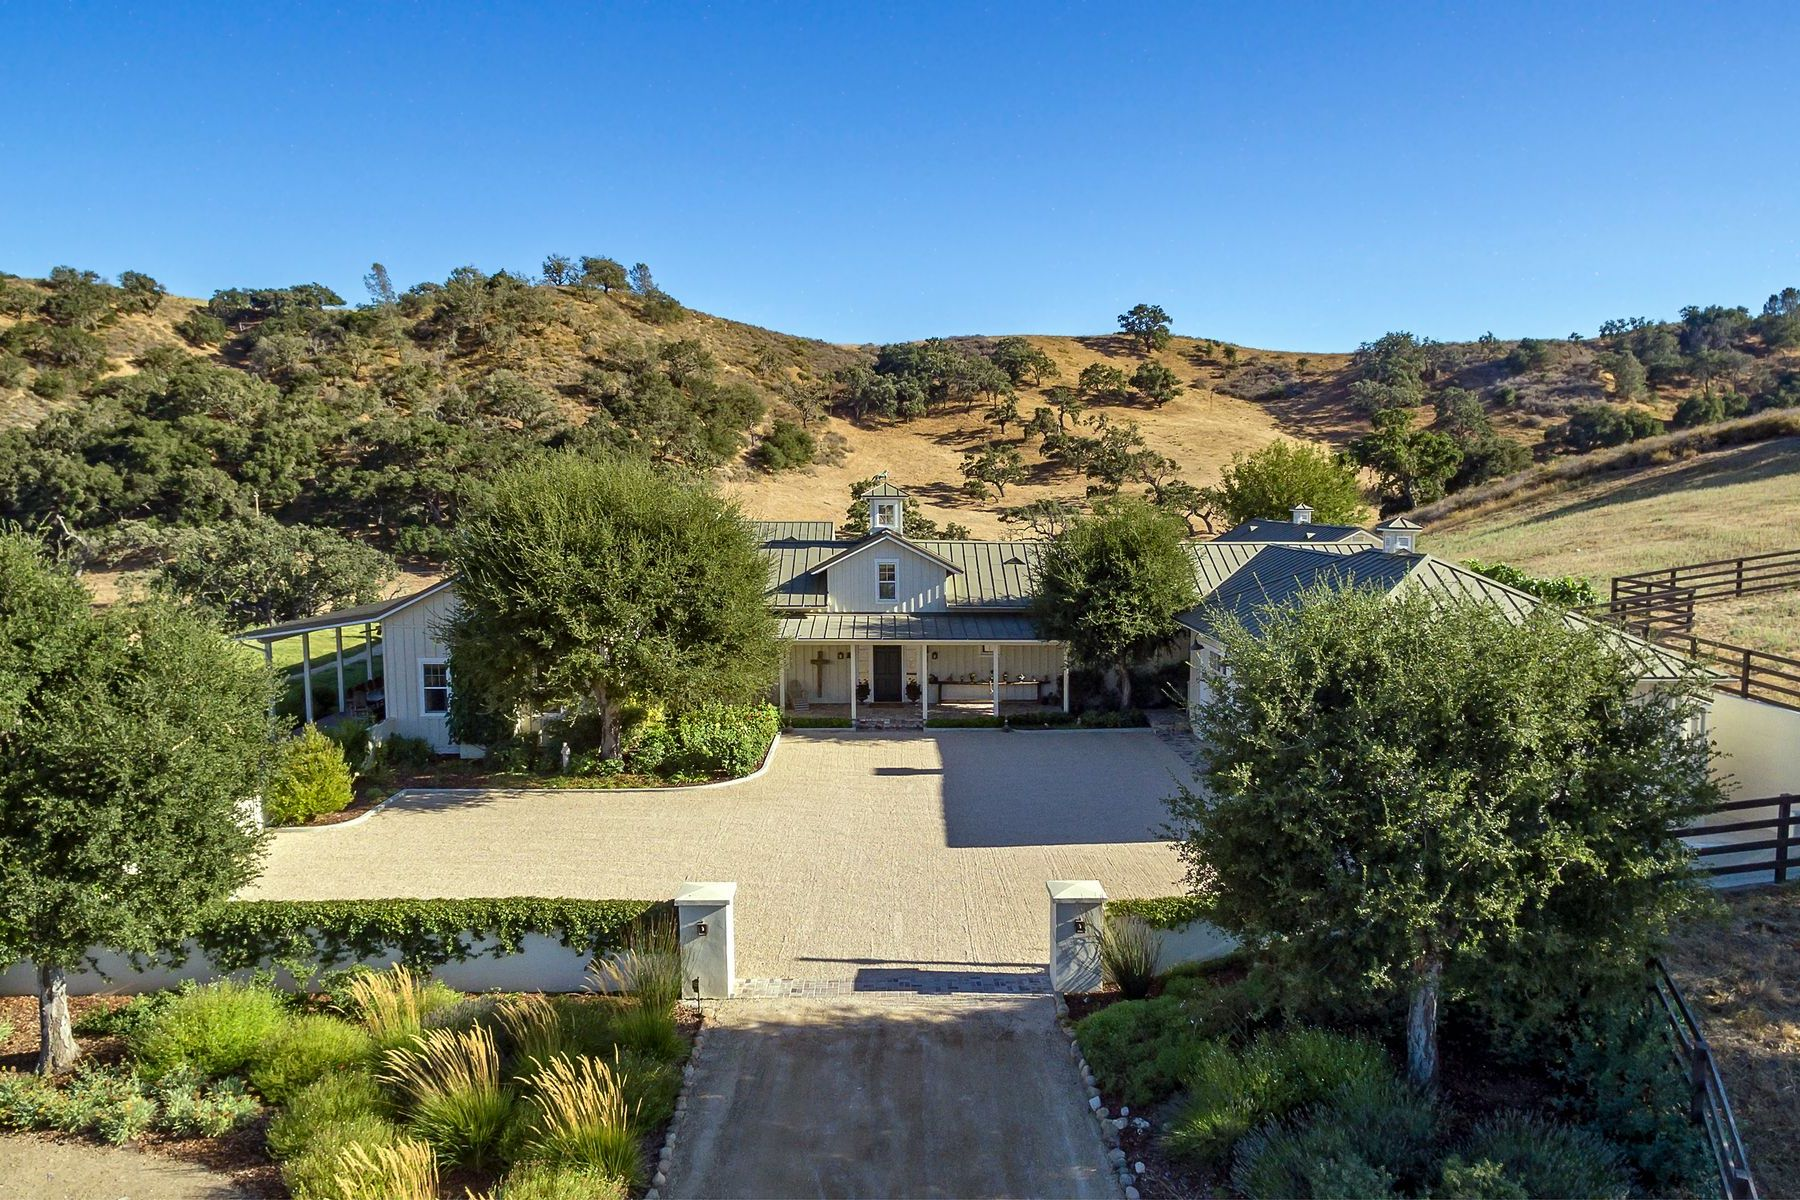 Vineyard Real Estate for Sale at Quail H Ranch 1162 Alisos Road Santa Ynez, California 93460 United States